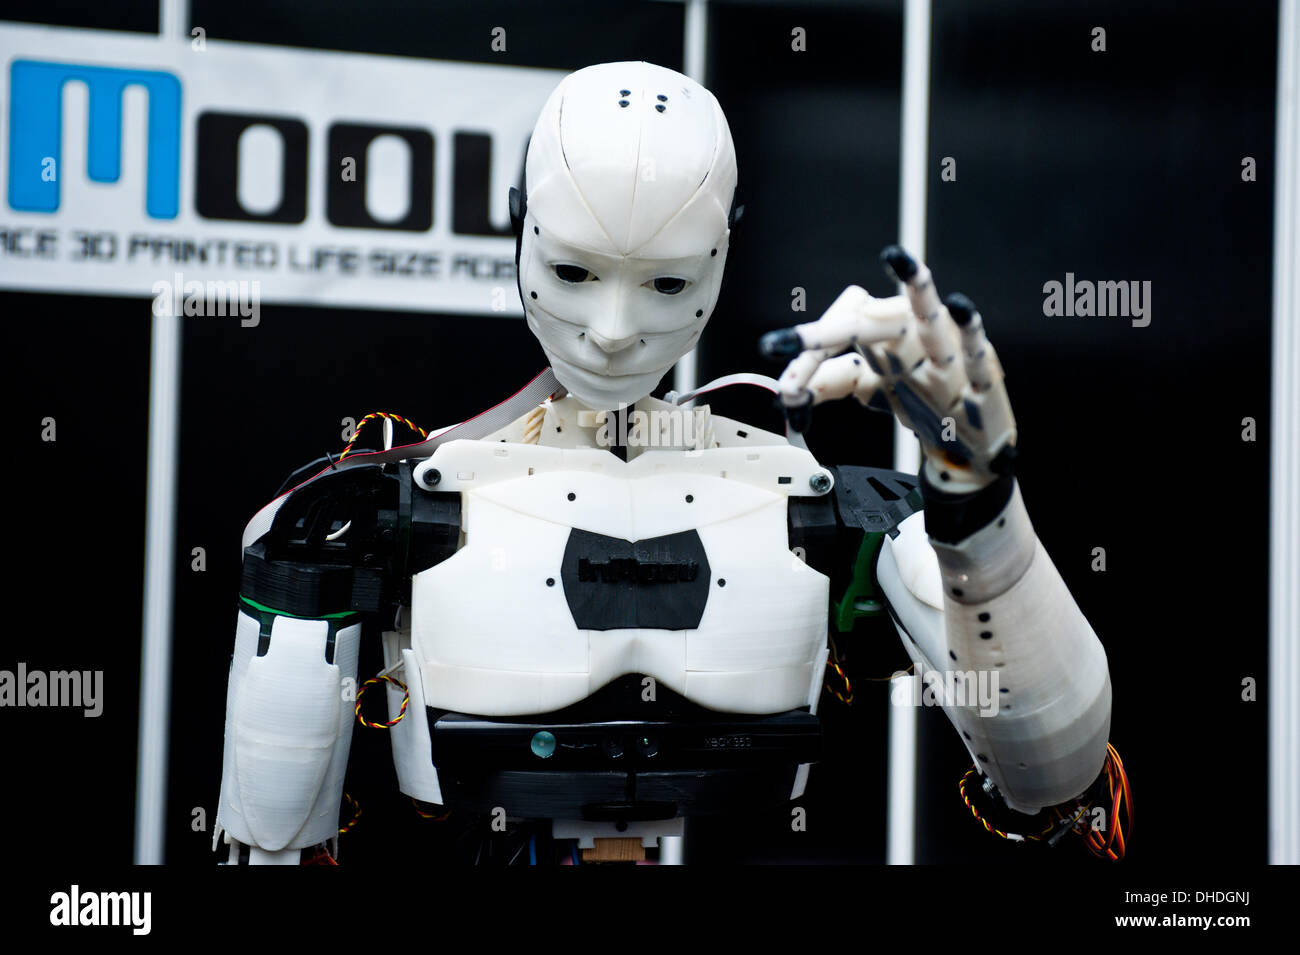 London, UK. 7th November 2013.  The InMoov Robot, an open-source humanoid robot comprised almost entirely of 3D printable parts designed by French sculptor and model-maker Gael Langevin, is on show at the 3D Printshow at the Business Design Centre in London. Credit:  Piero Cruciatti/Alamy Live News - Stock Image